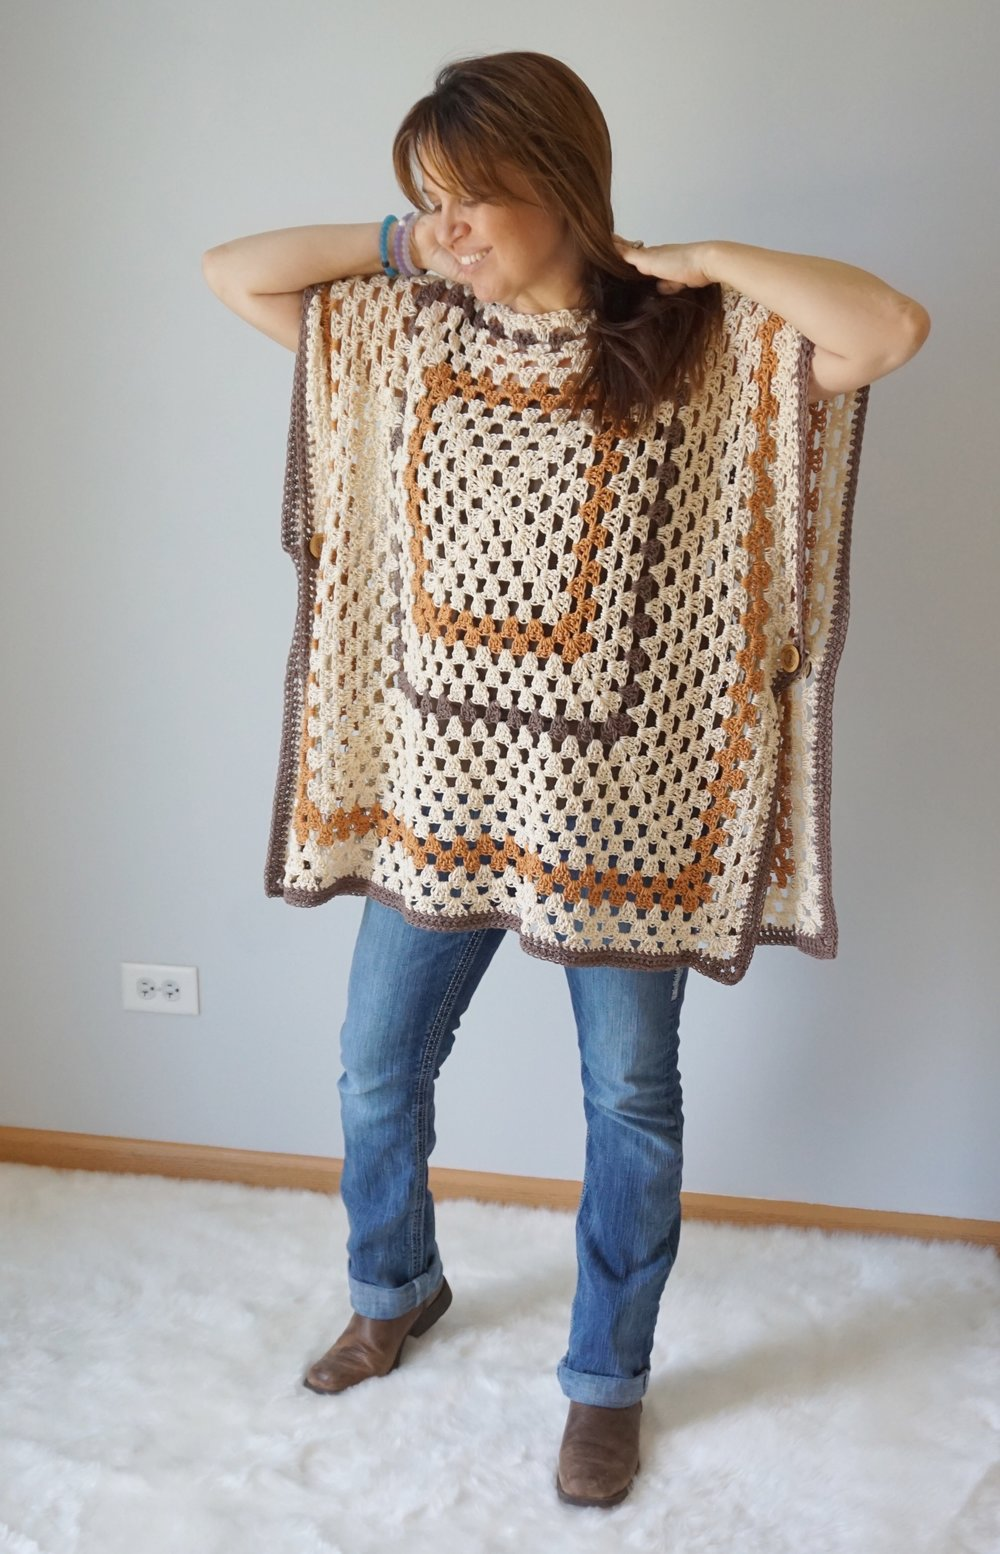 Lion_Brand_247_Cotton_Poncho_Project_54.jpg